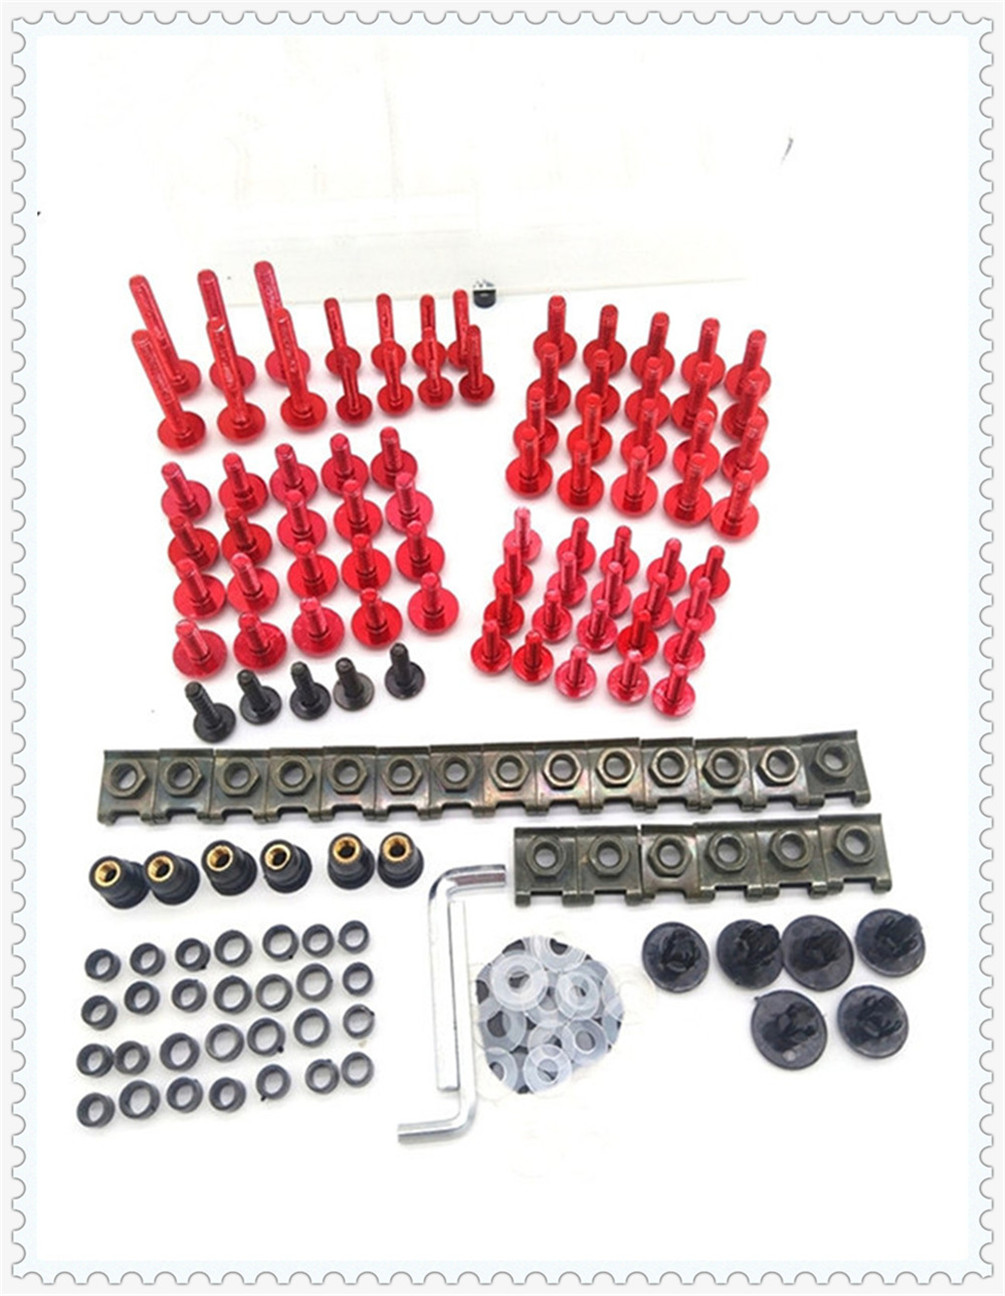 Motorcycle parts fairing windshield body bolt nut fastening kit for Aprilia MANA MODEL RST1000 FUTURA RSV MILLE R image